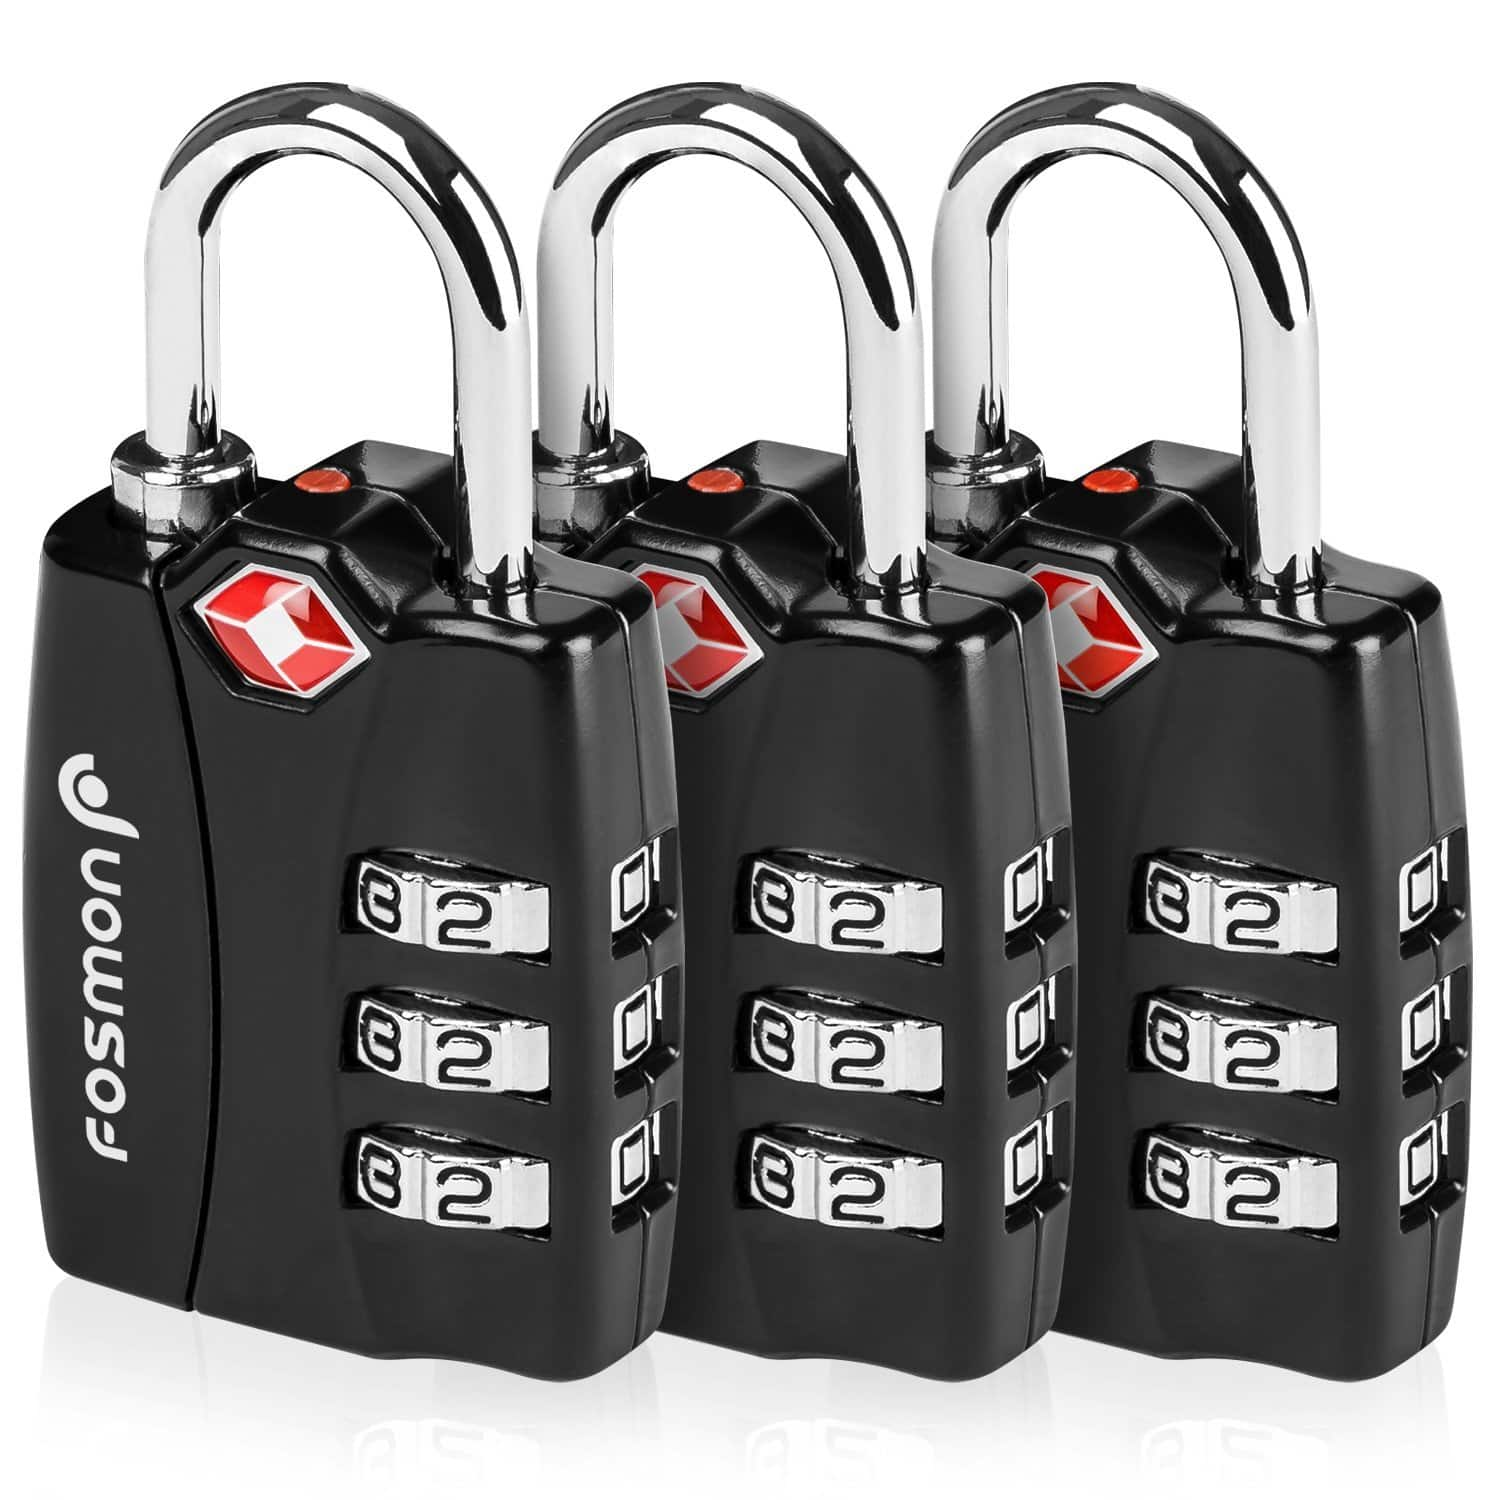 3-Pack Fosmon 3-Digit Combination TSA Approved Luggage Lock $8, Fosmon (CE Certified) Universal Adapter Type G $2 & More + FS